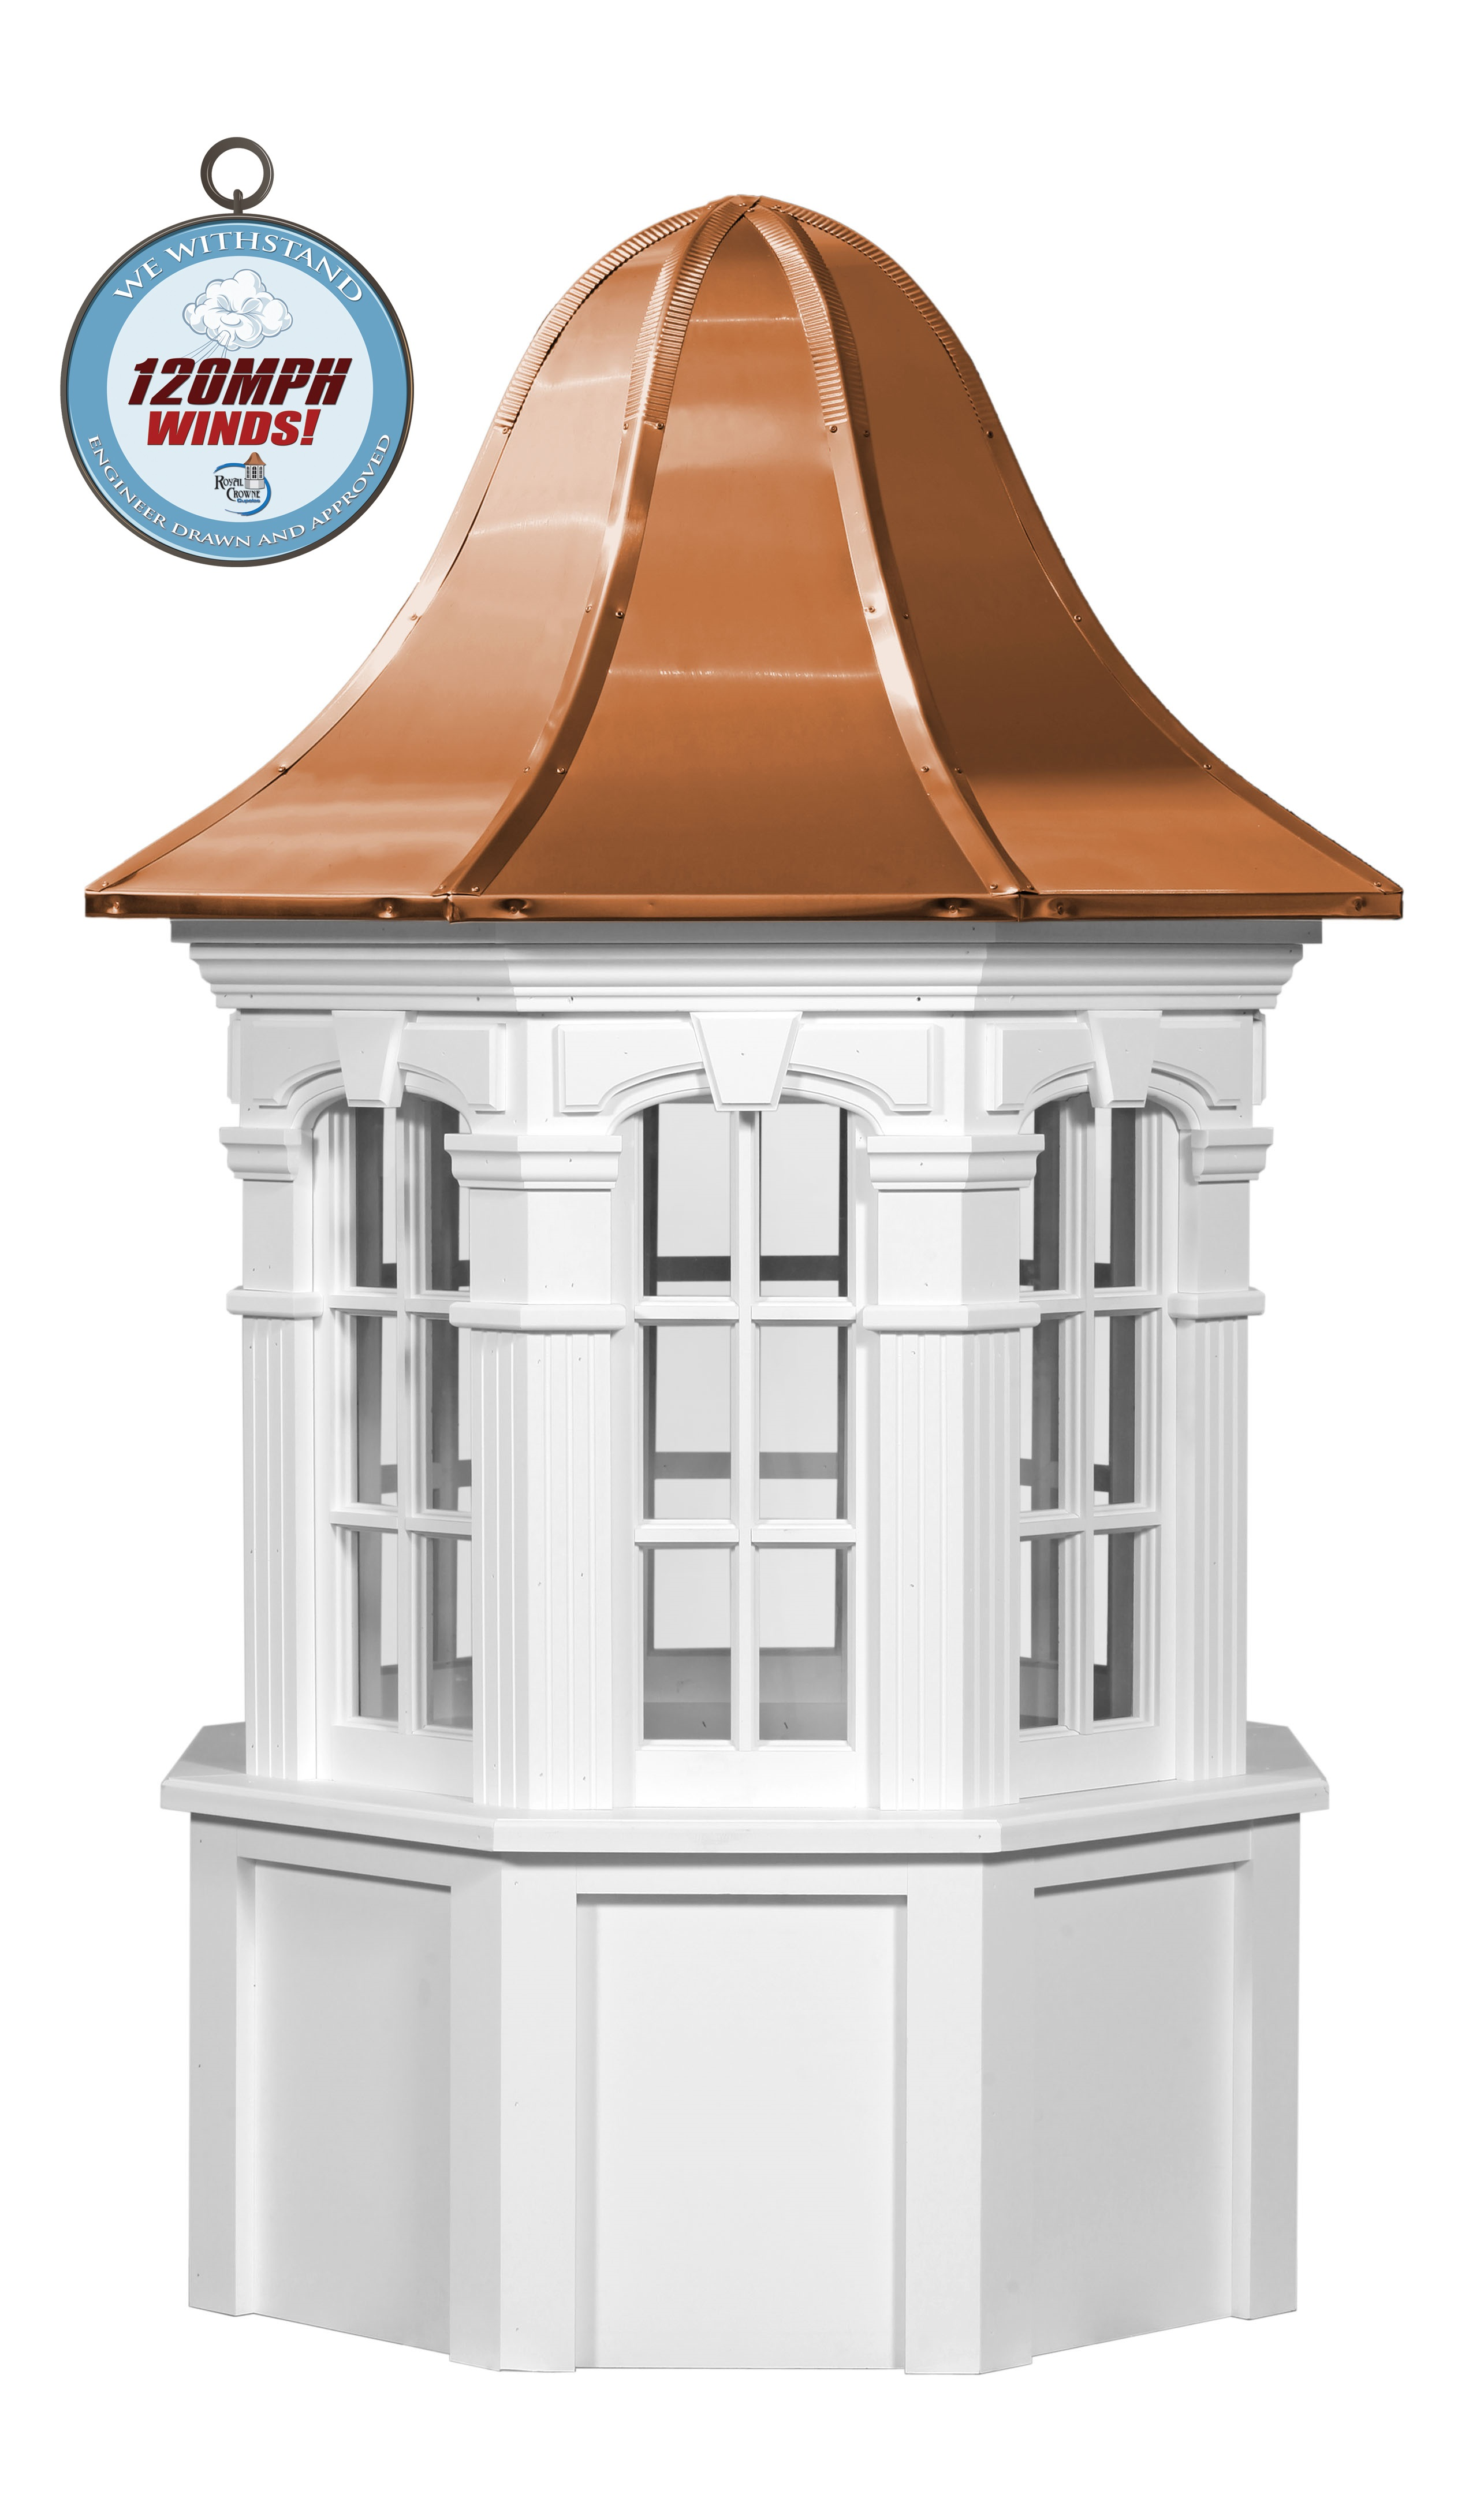 yarmouth cupola with we withstand 120mph winds logo